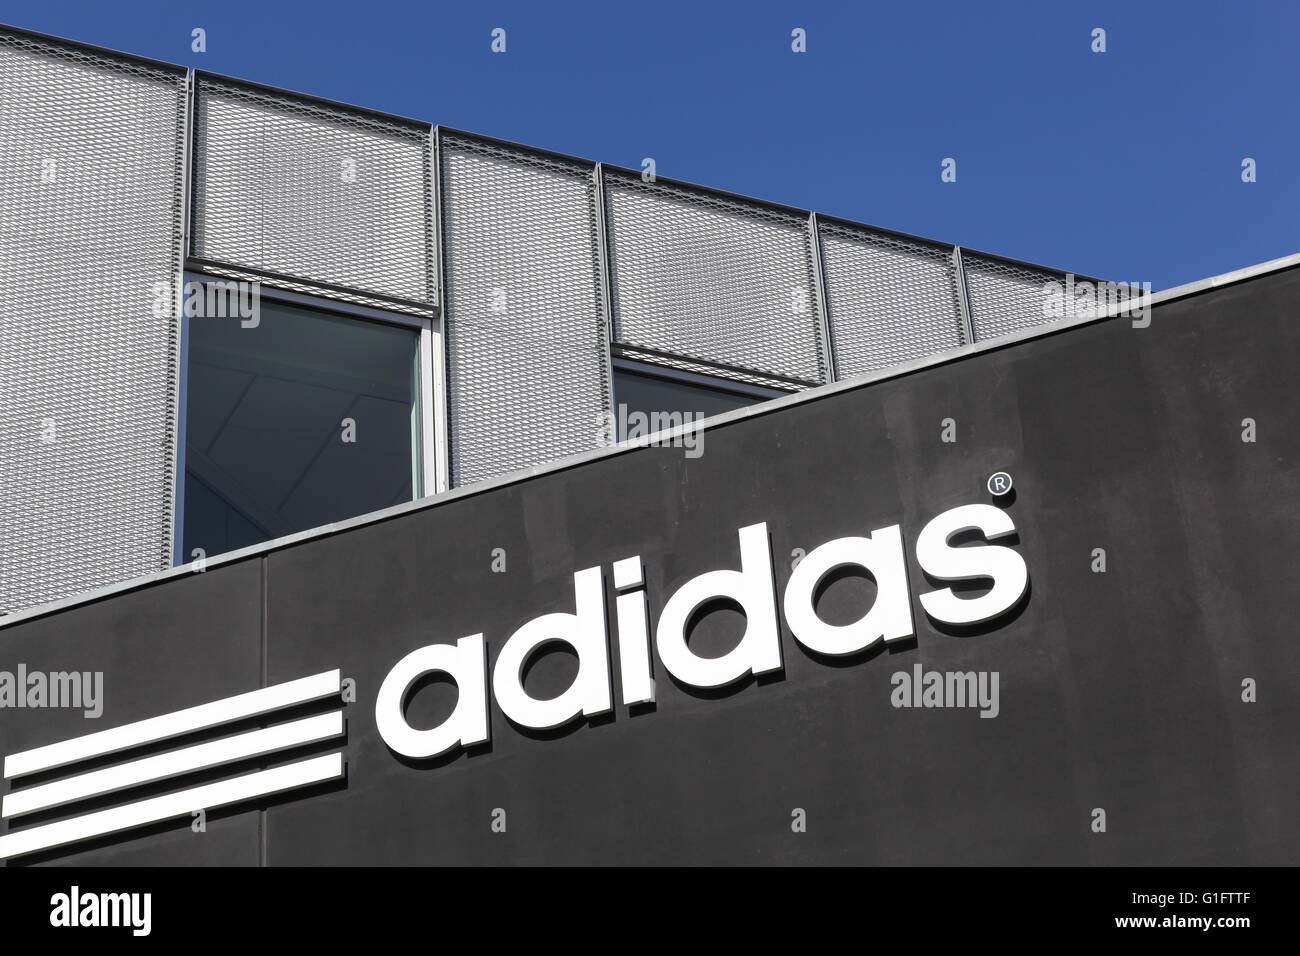 Adidas logo on a wall - Stock Image